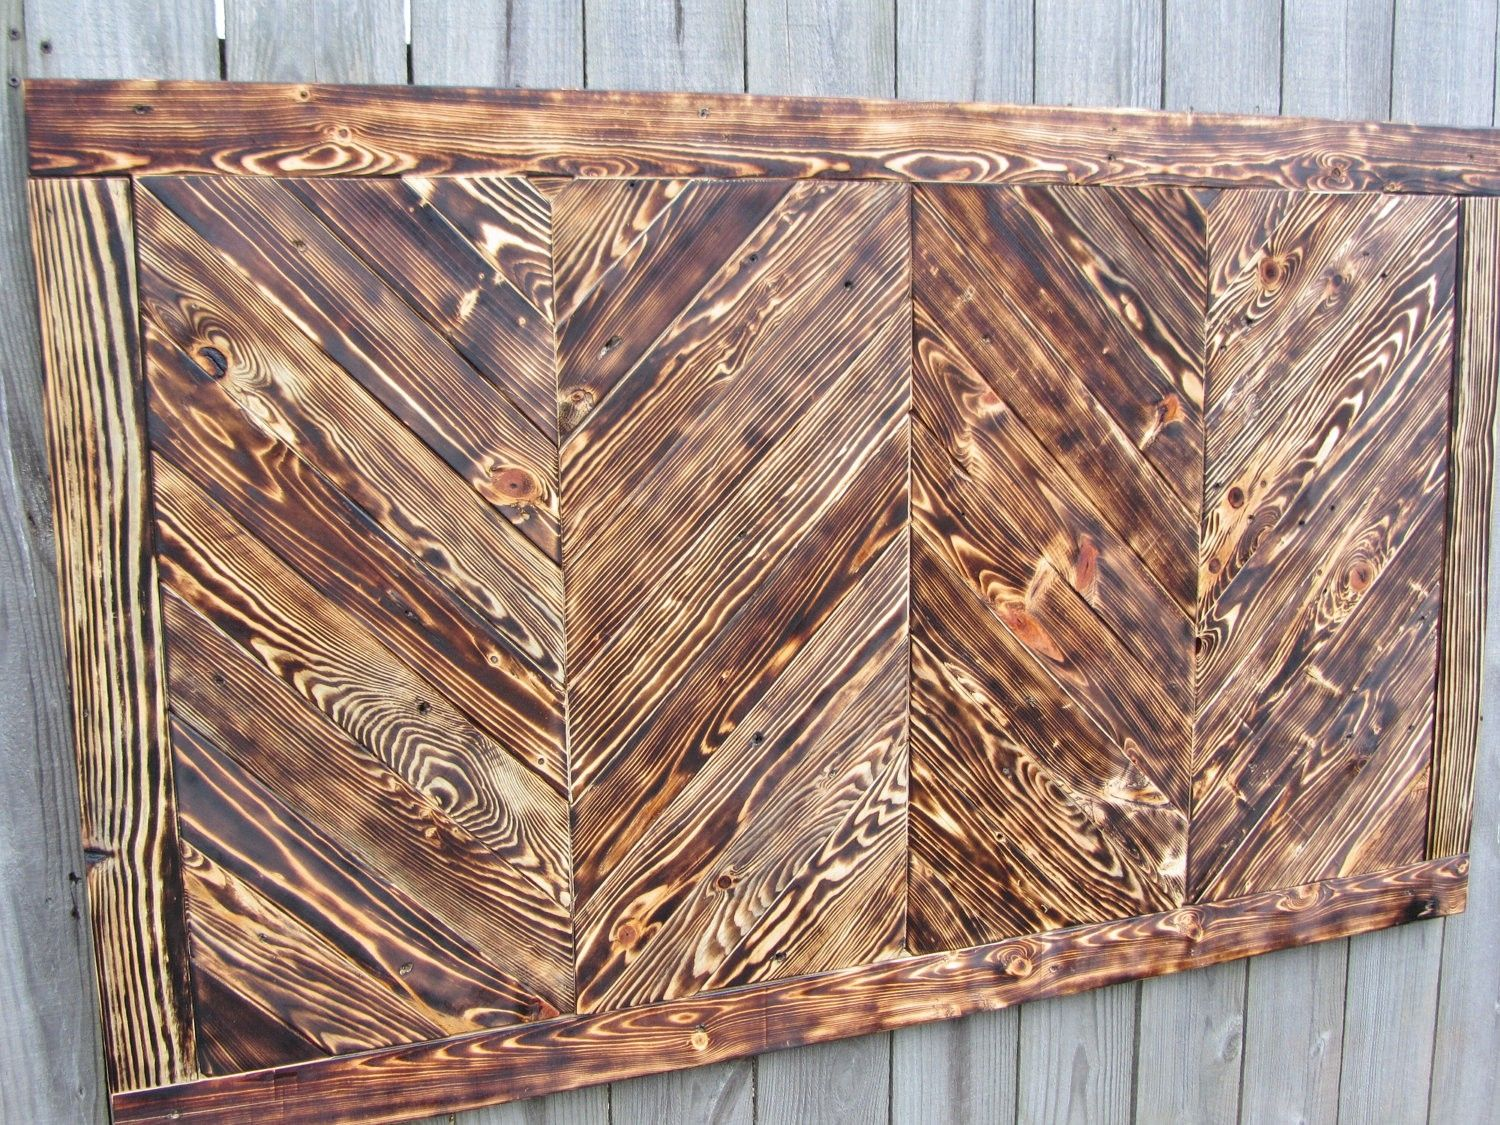 hand crafted chevron wood wall art made from reclaimed